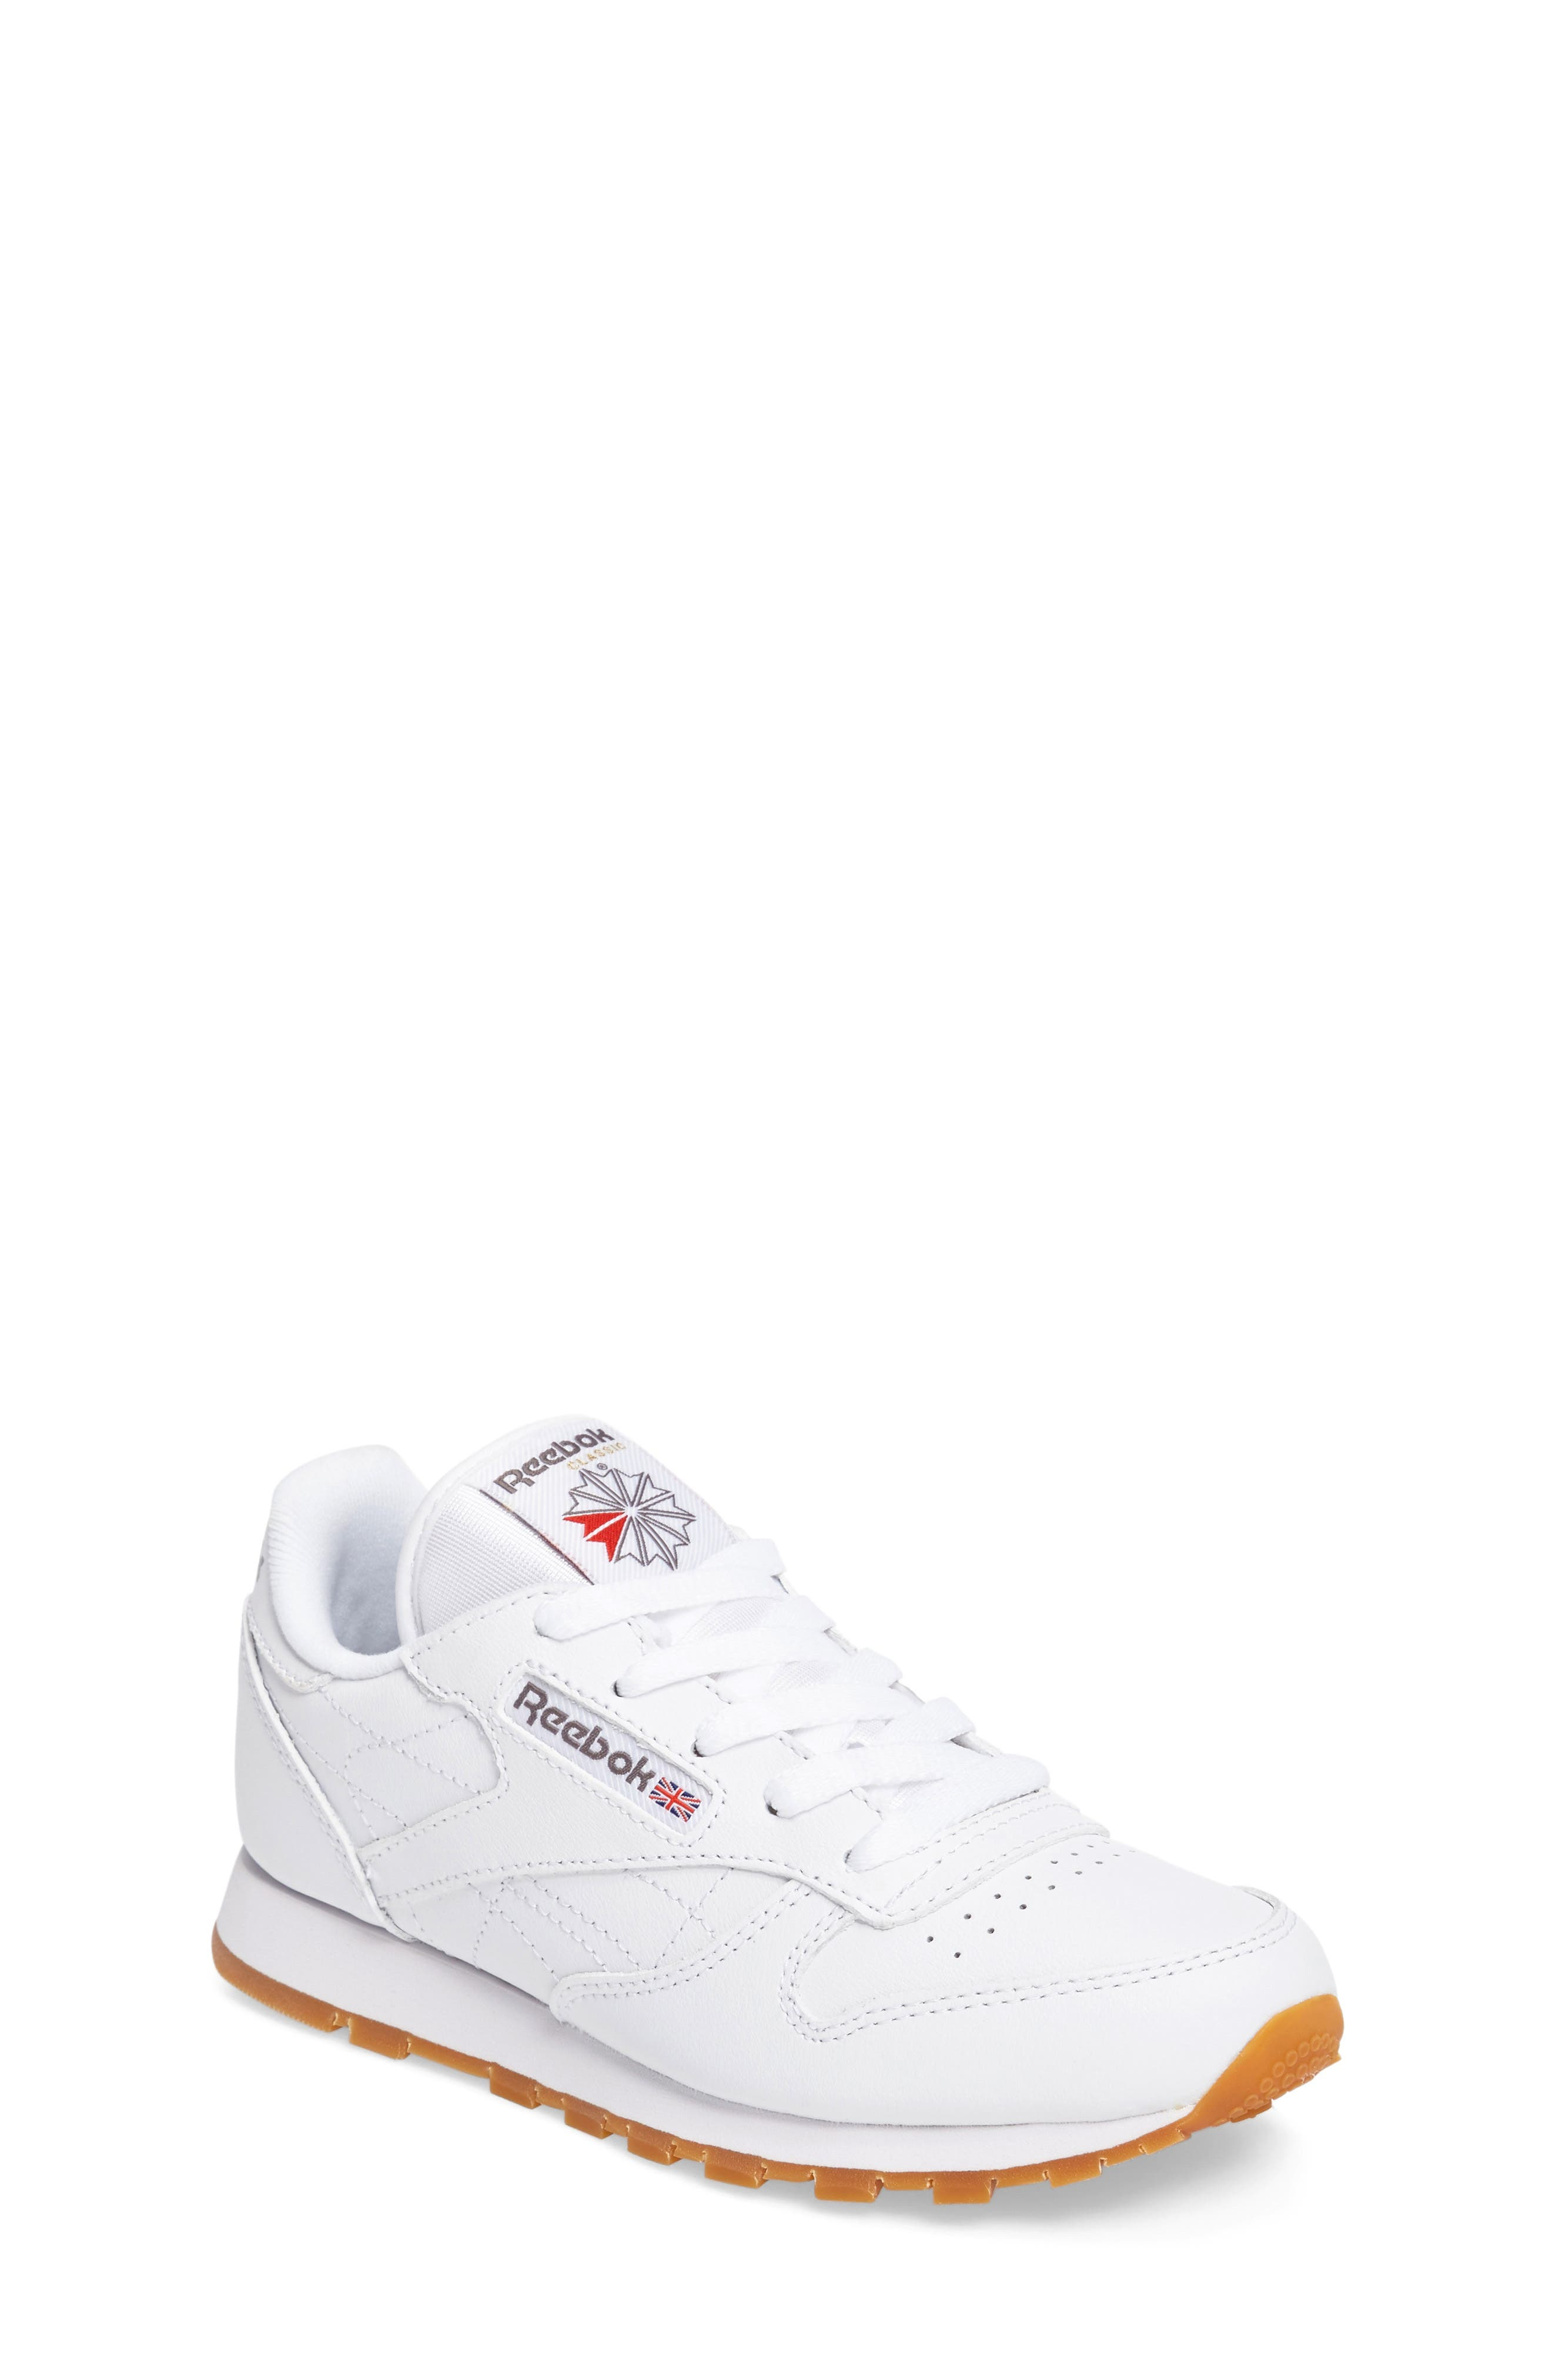 Classic Leather Sneaker,                             Main thumbnail 1, color,                             WHITE/ GUM